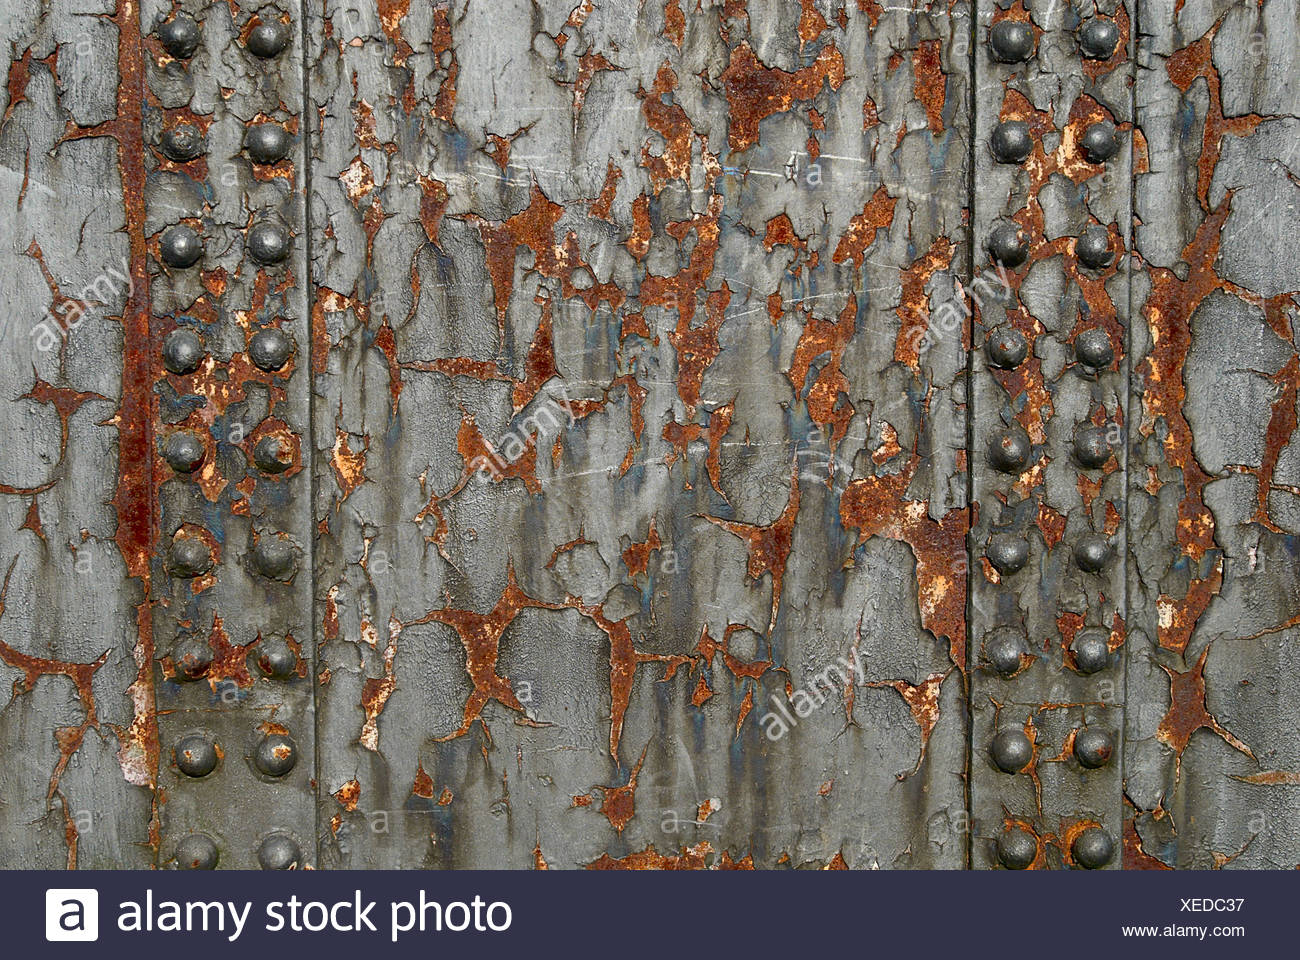 Extensive rusting on girders Stock Photo